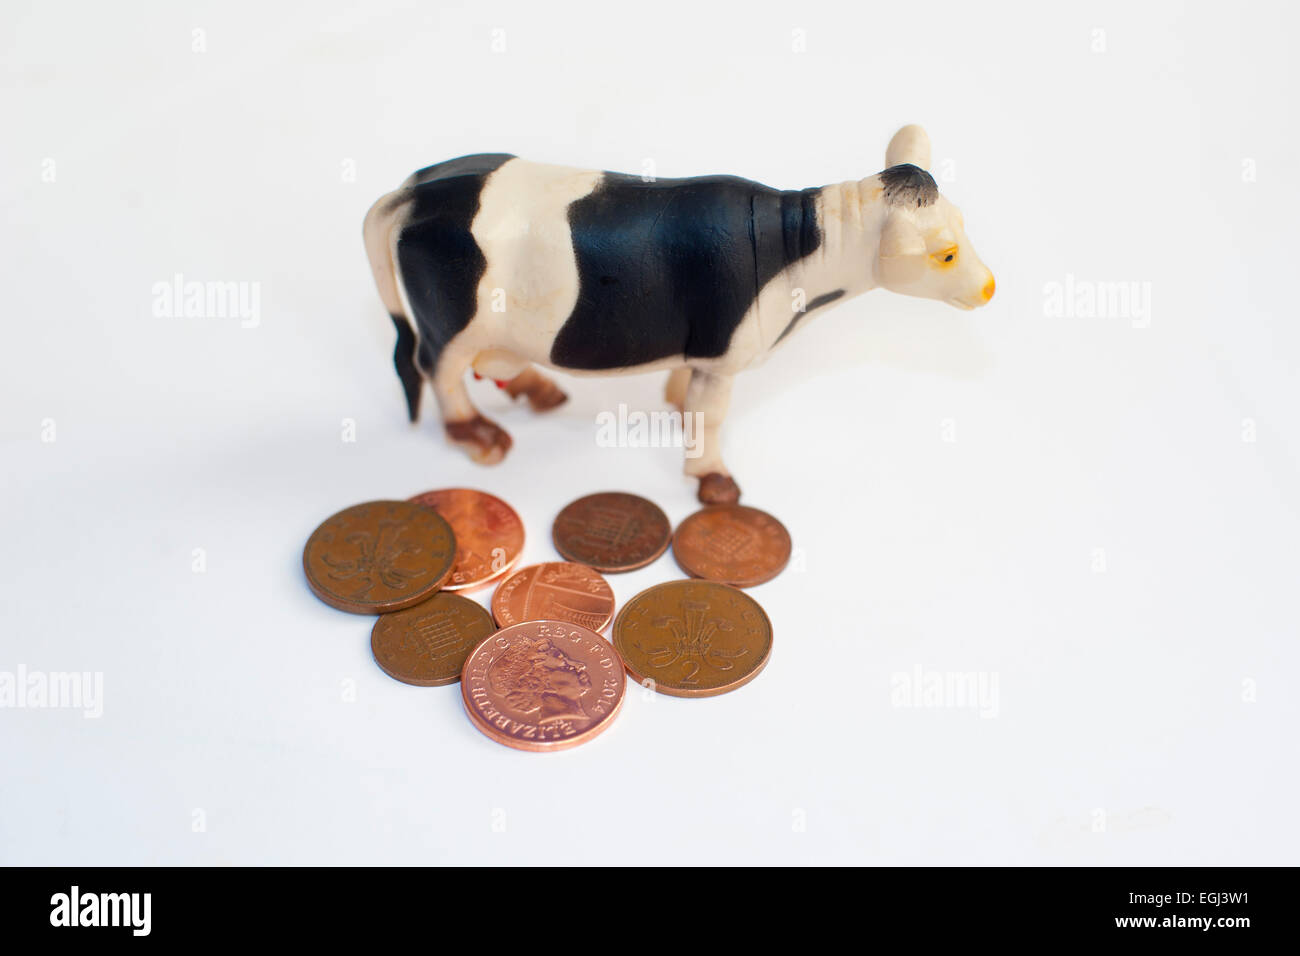 a cow standing and copper coins pennies symbolizing the decline in British agriculture isolated on a white background - Stock Image